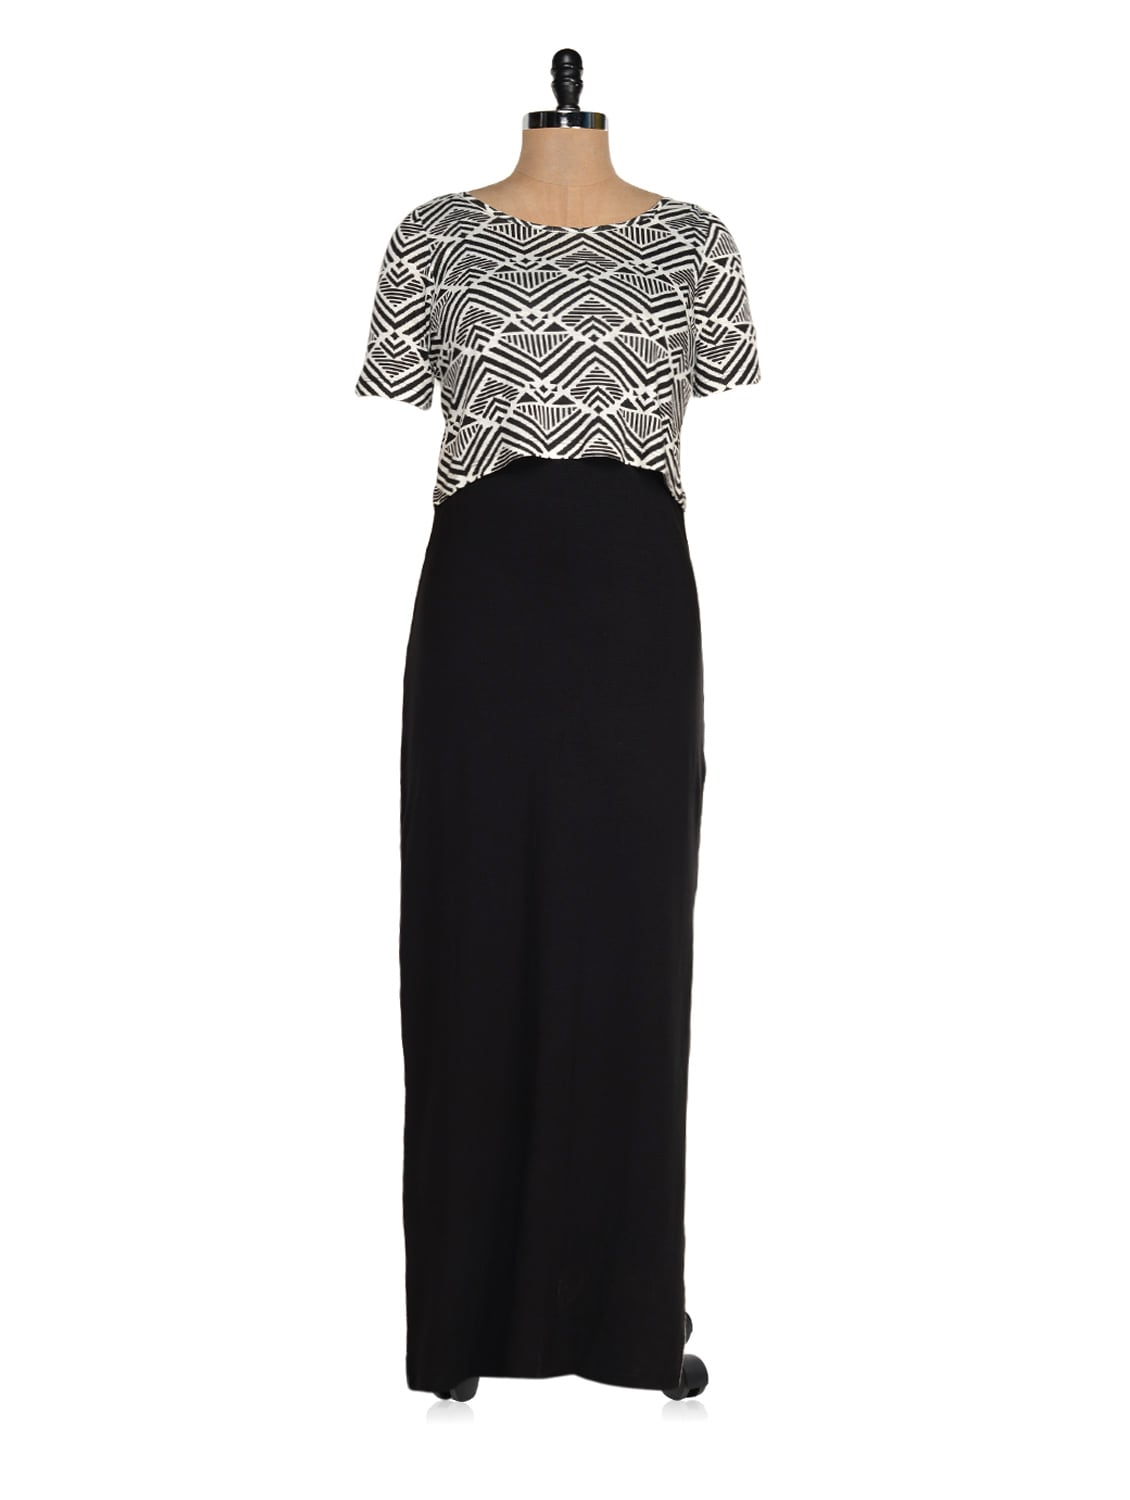 Black And White Layered Maxi Dress - Magnetic Designs